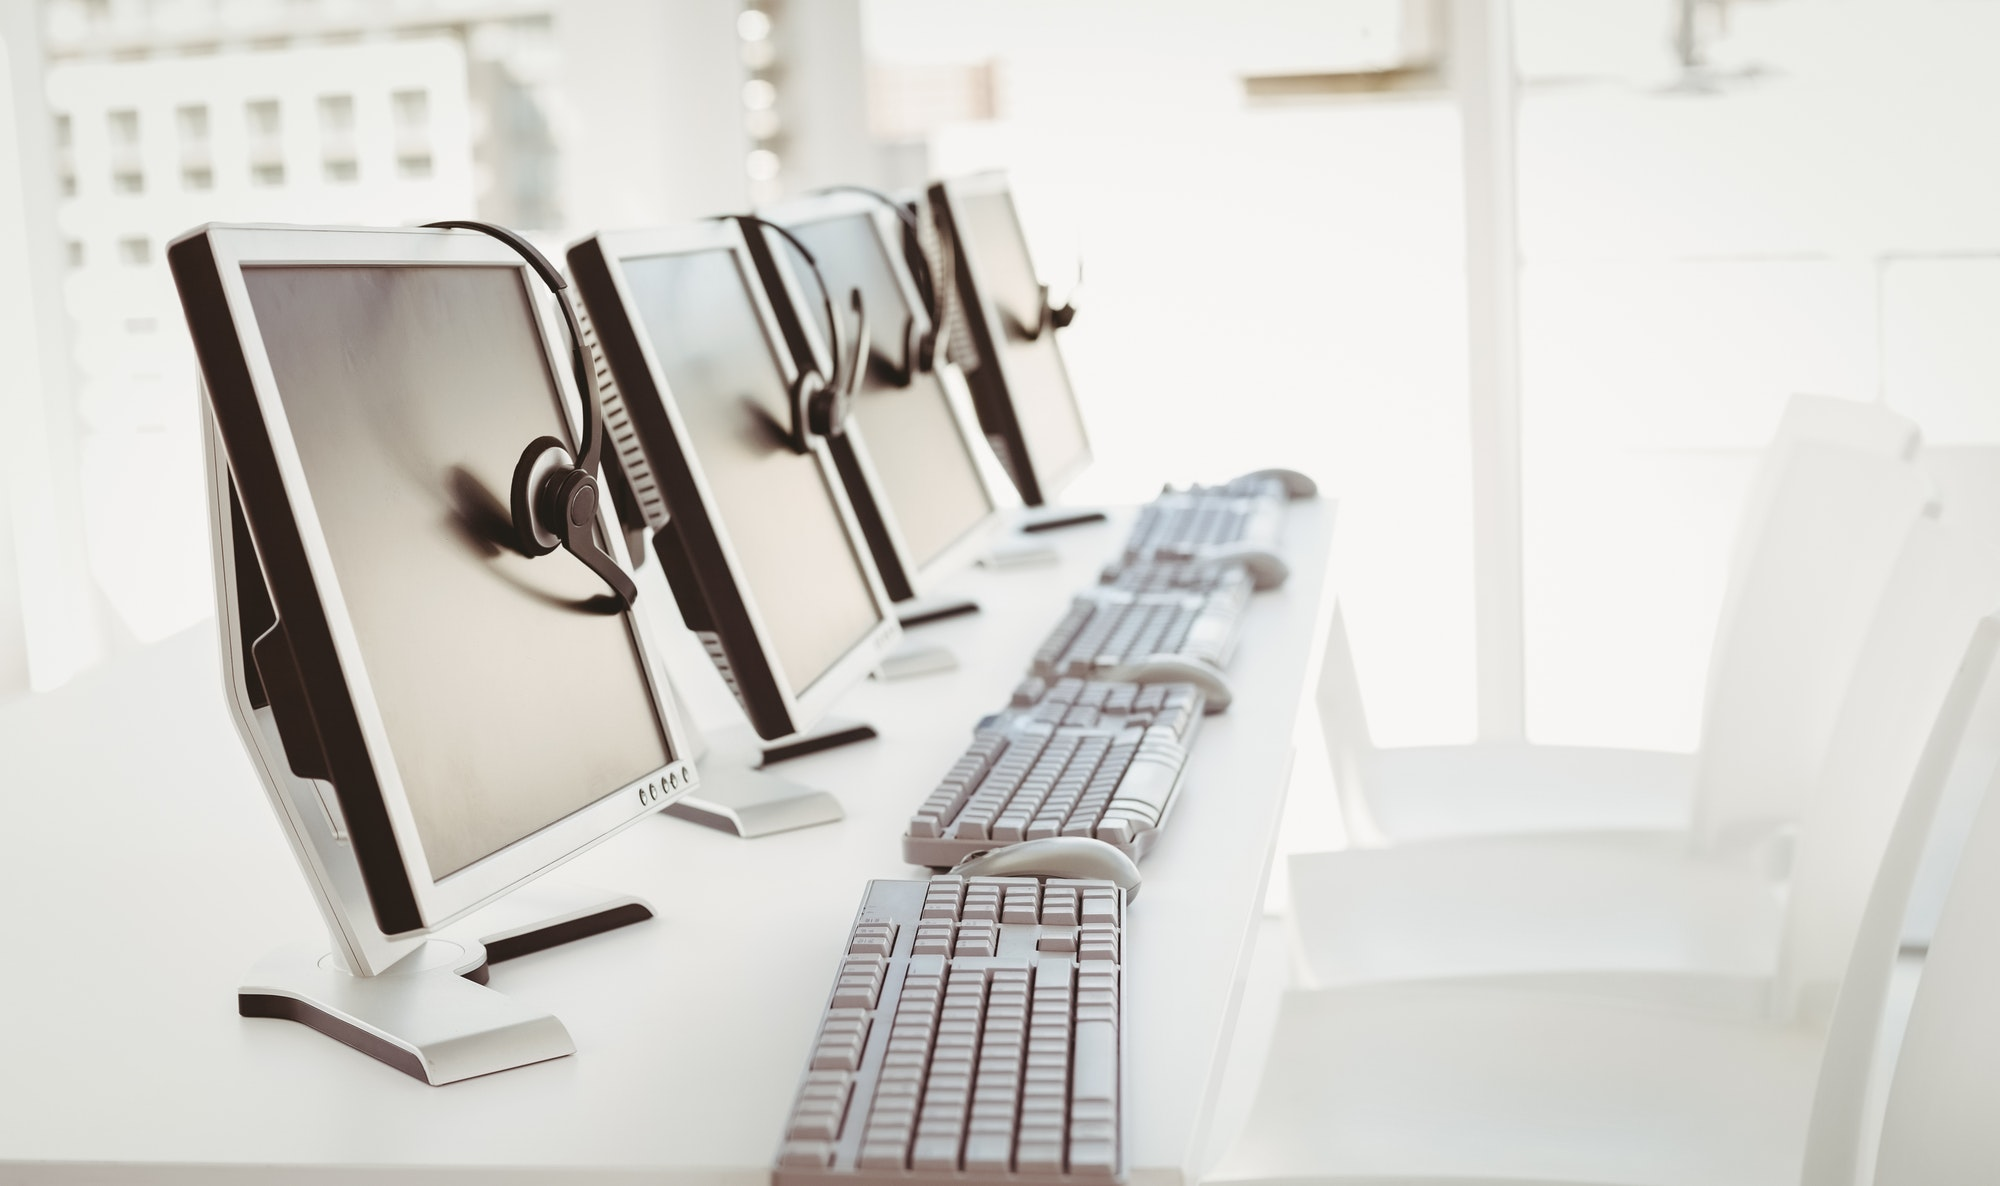 Call center computers and headsets all in a row